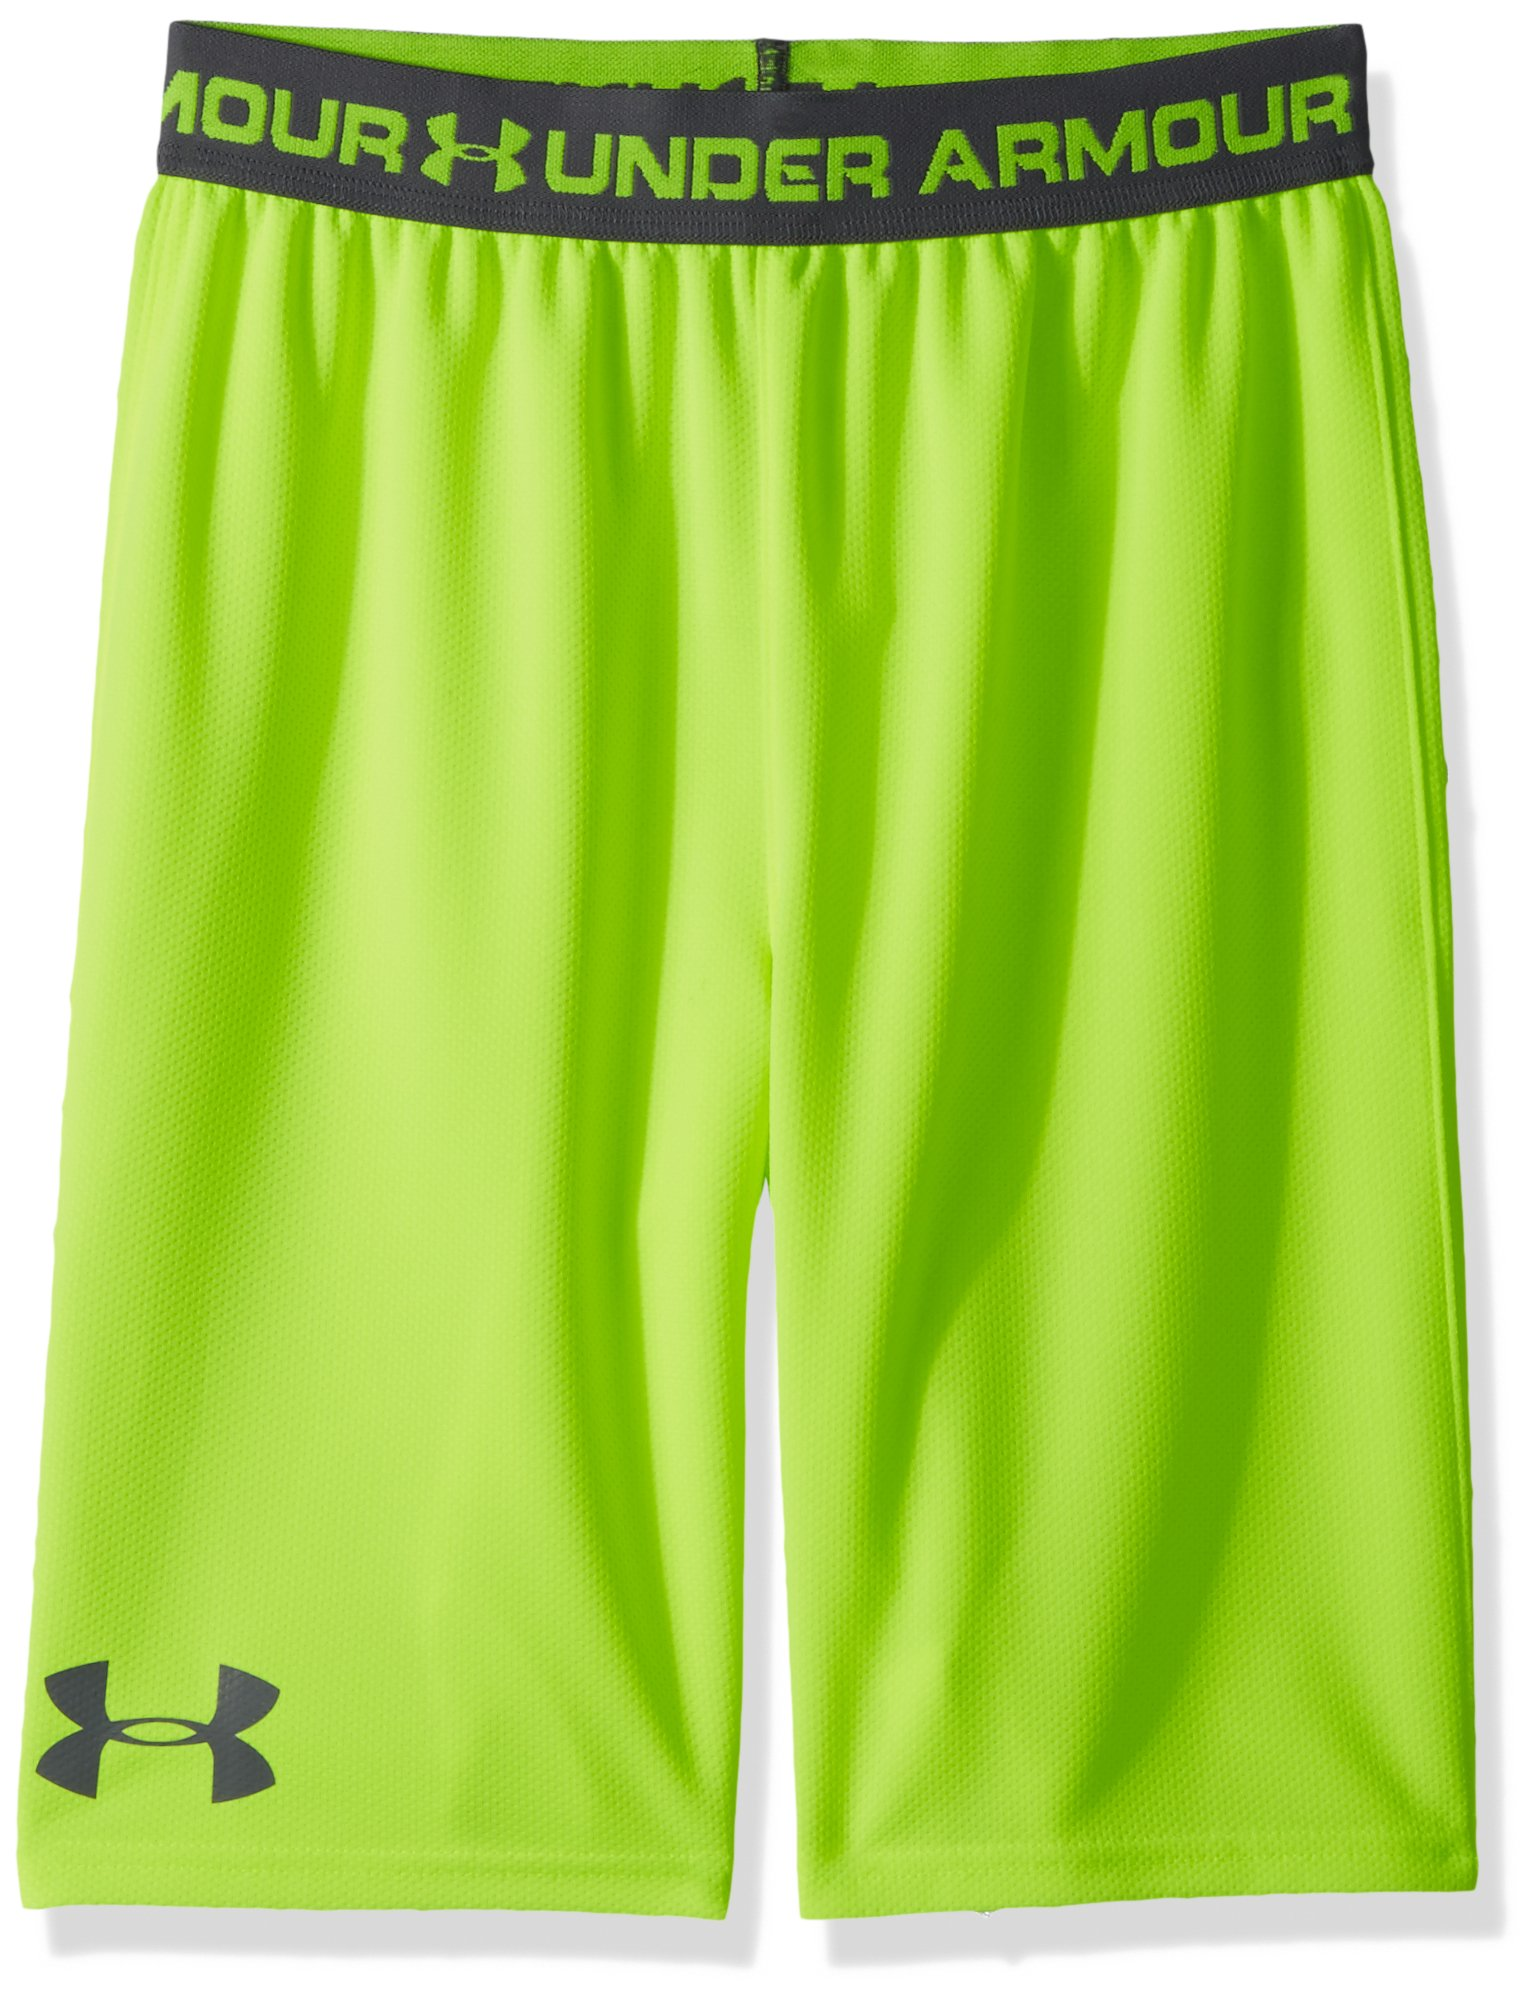 Under Armour Boys' Tech Prototype 2.0 Shorts, High-Vis Yellow (731)/Graphite, Youth Medium